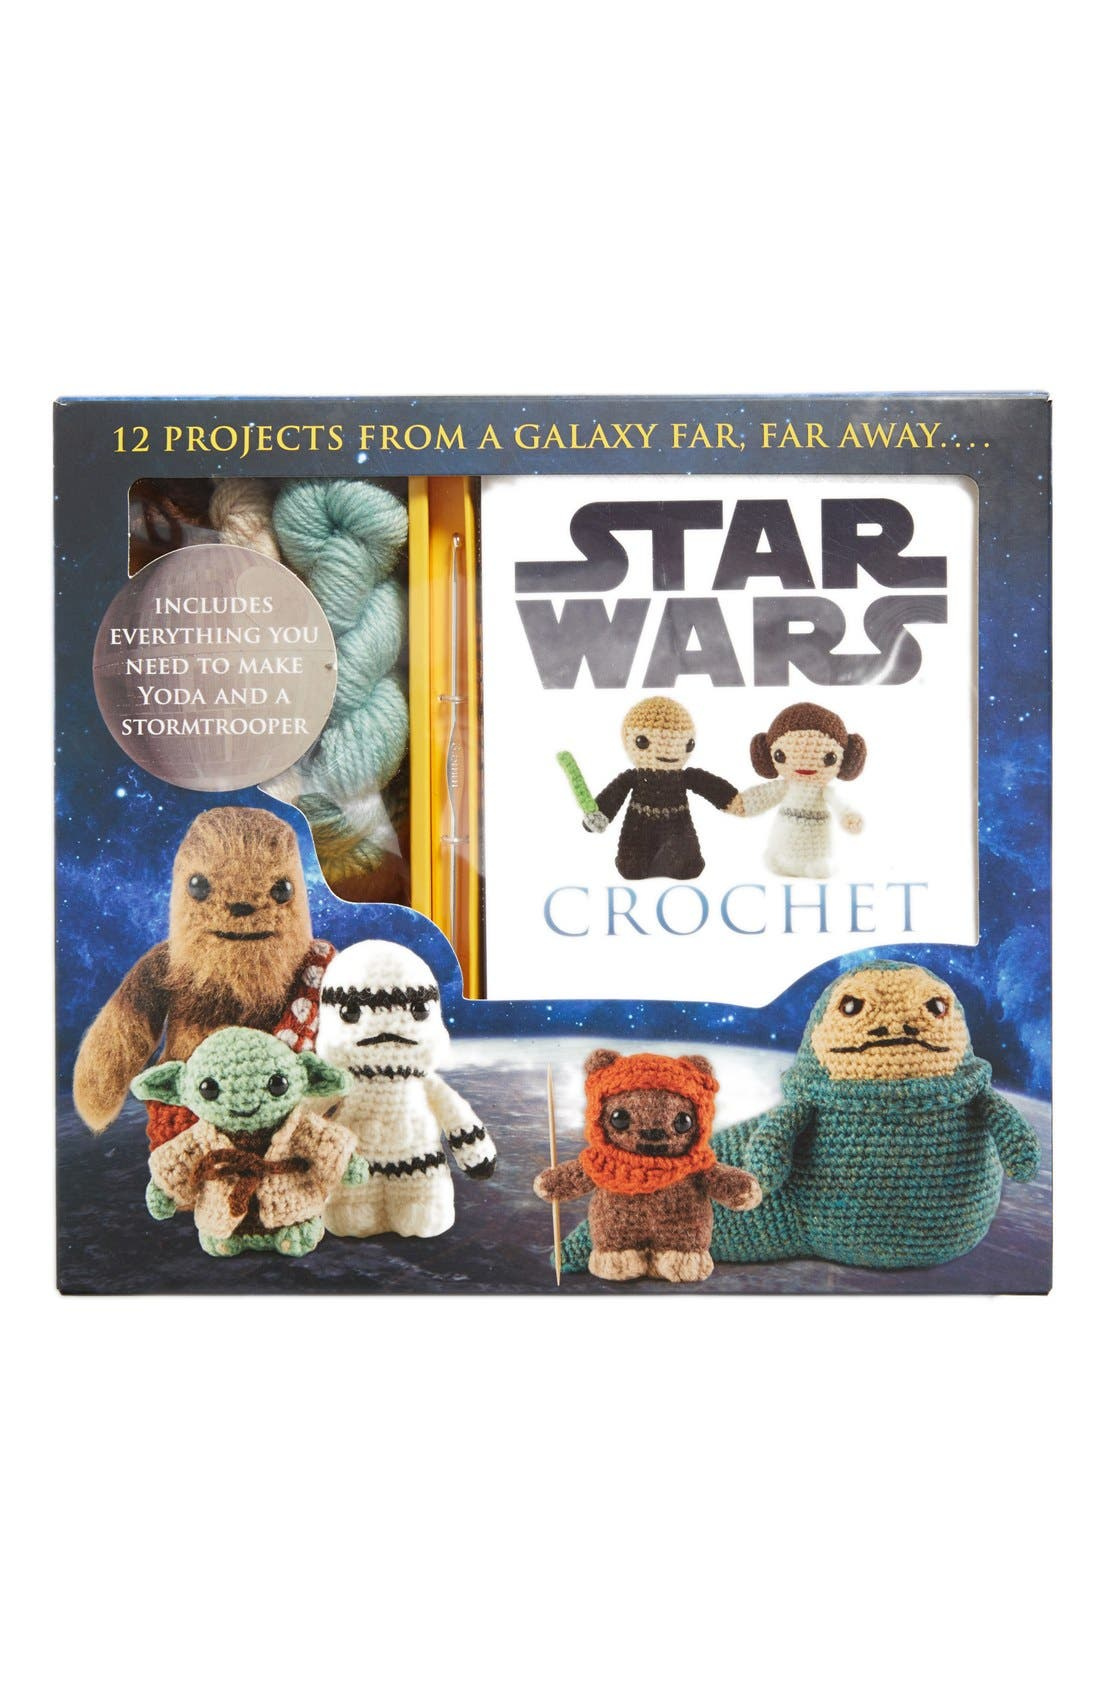 Alternate Image 1 Selected - Thunder Bay Press 'Star Wars Crochet' Book & Kit